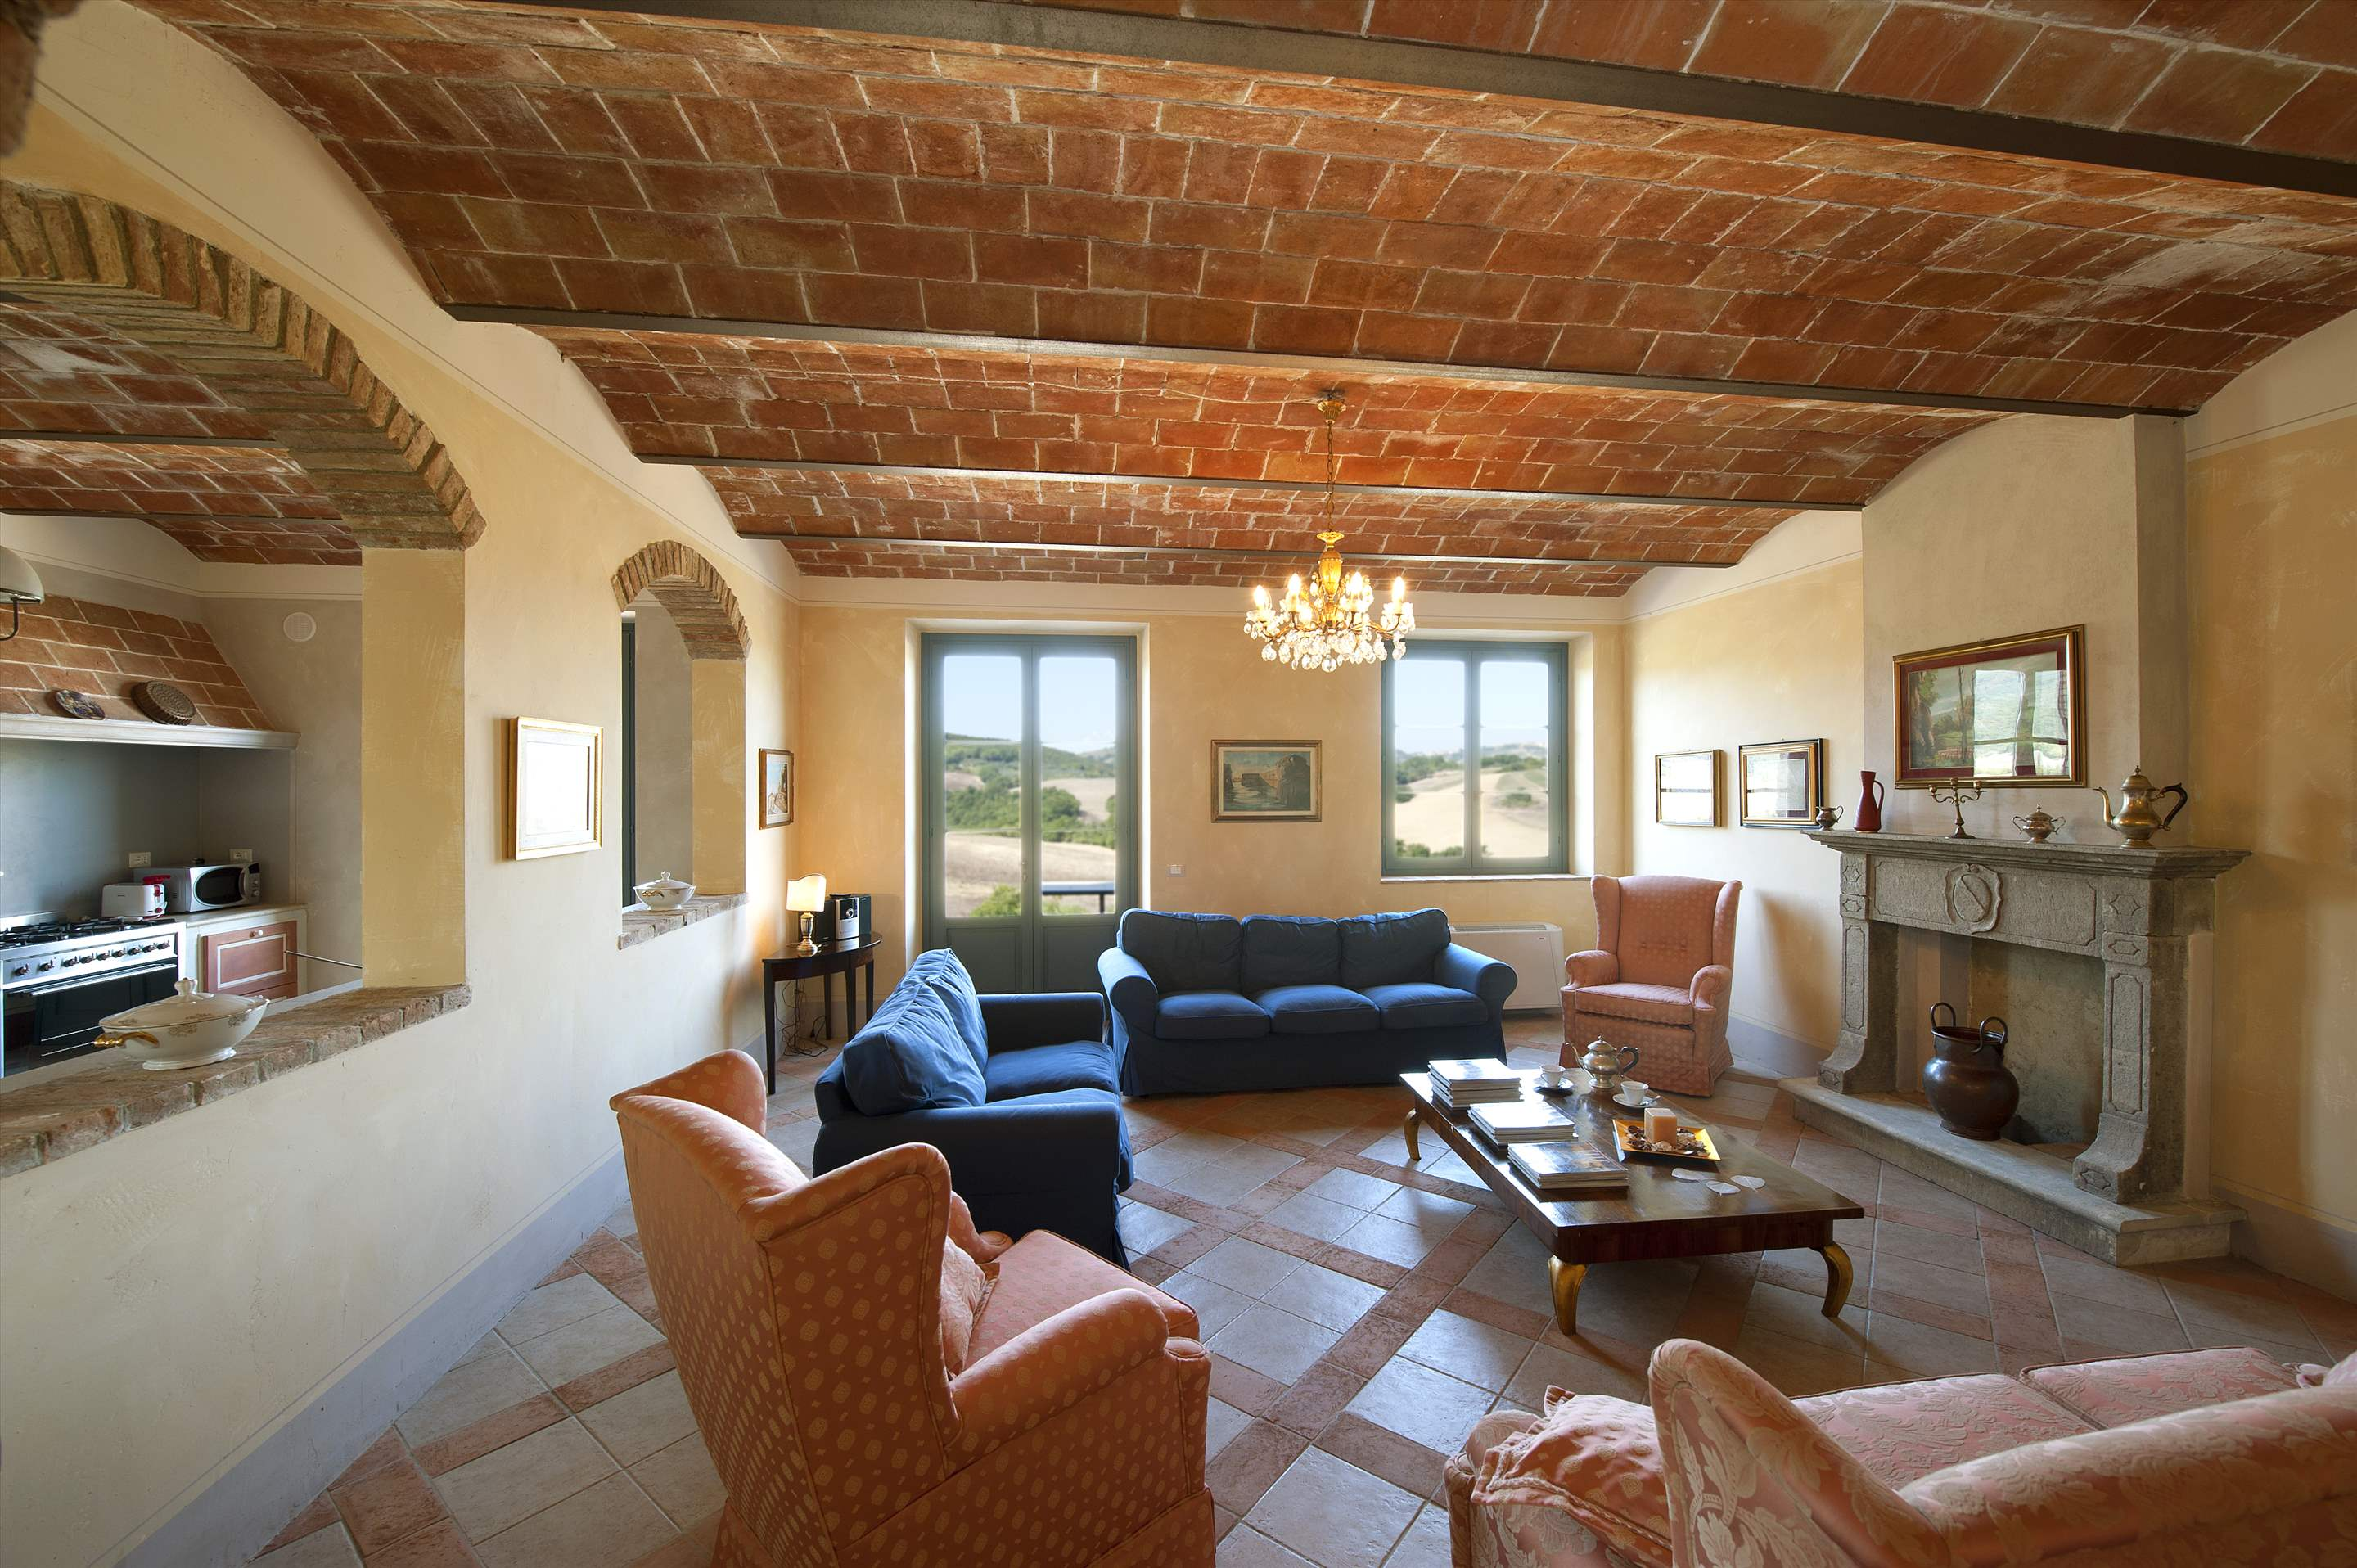 Podere Di Collina, First Floor, 4 bedroom villa in Tuscany Coast, Tuscany Photo #6